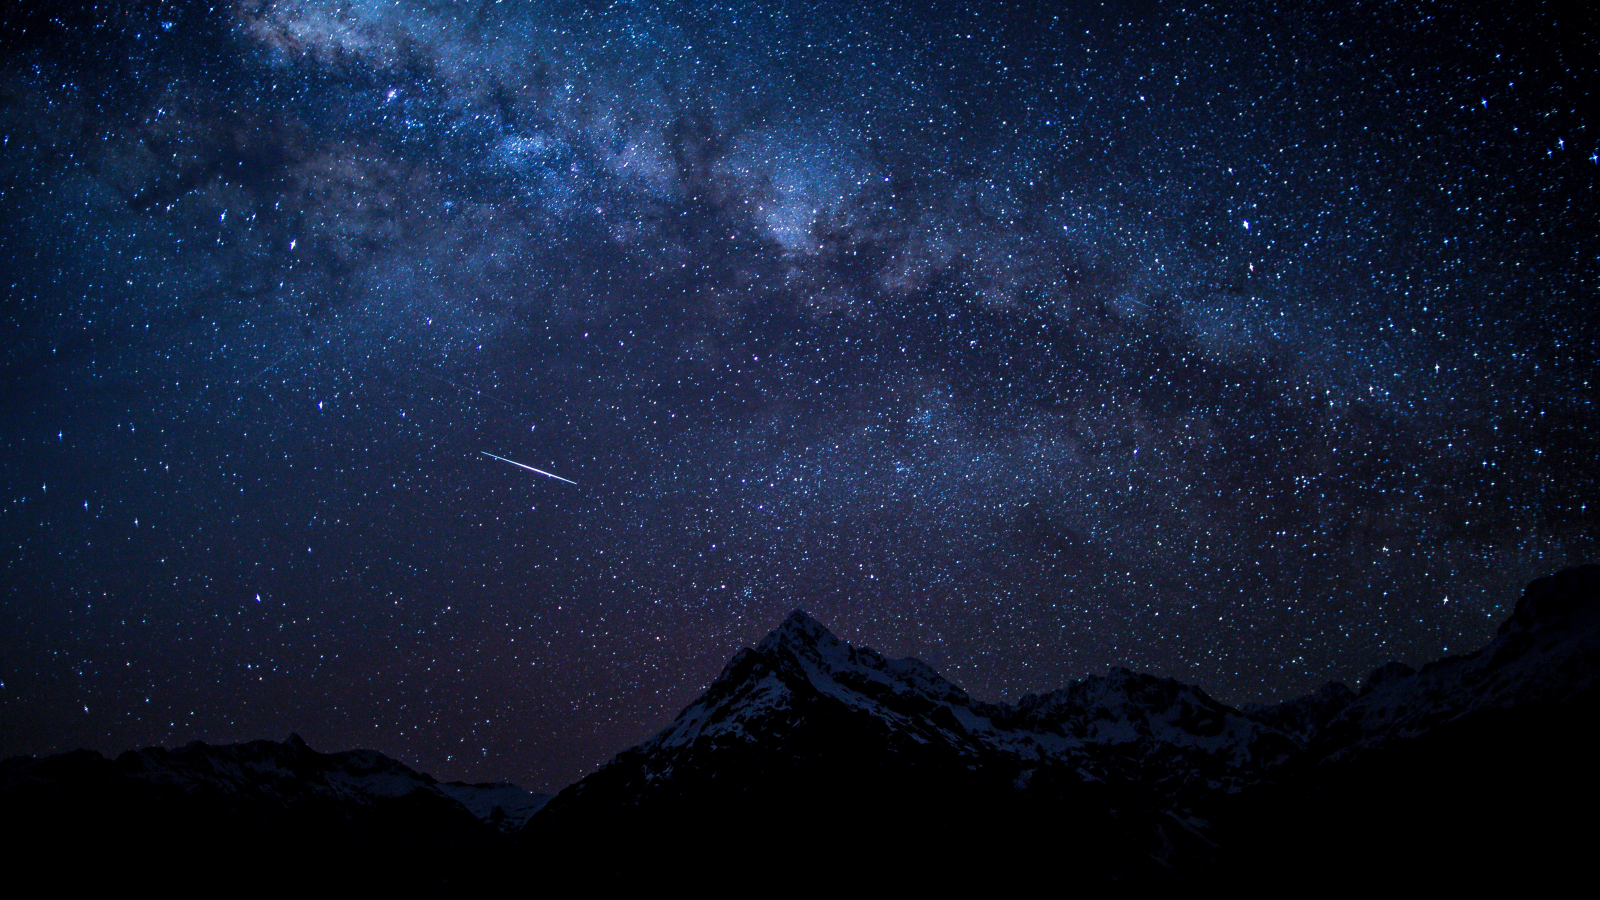 Starry sky, night, mountains, nature, 1600x900 wallpaper